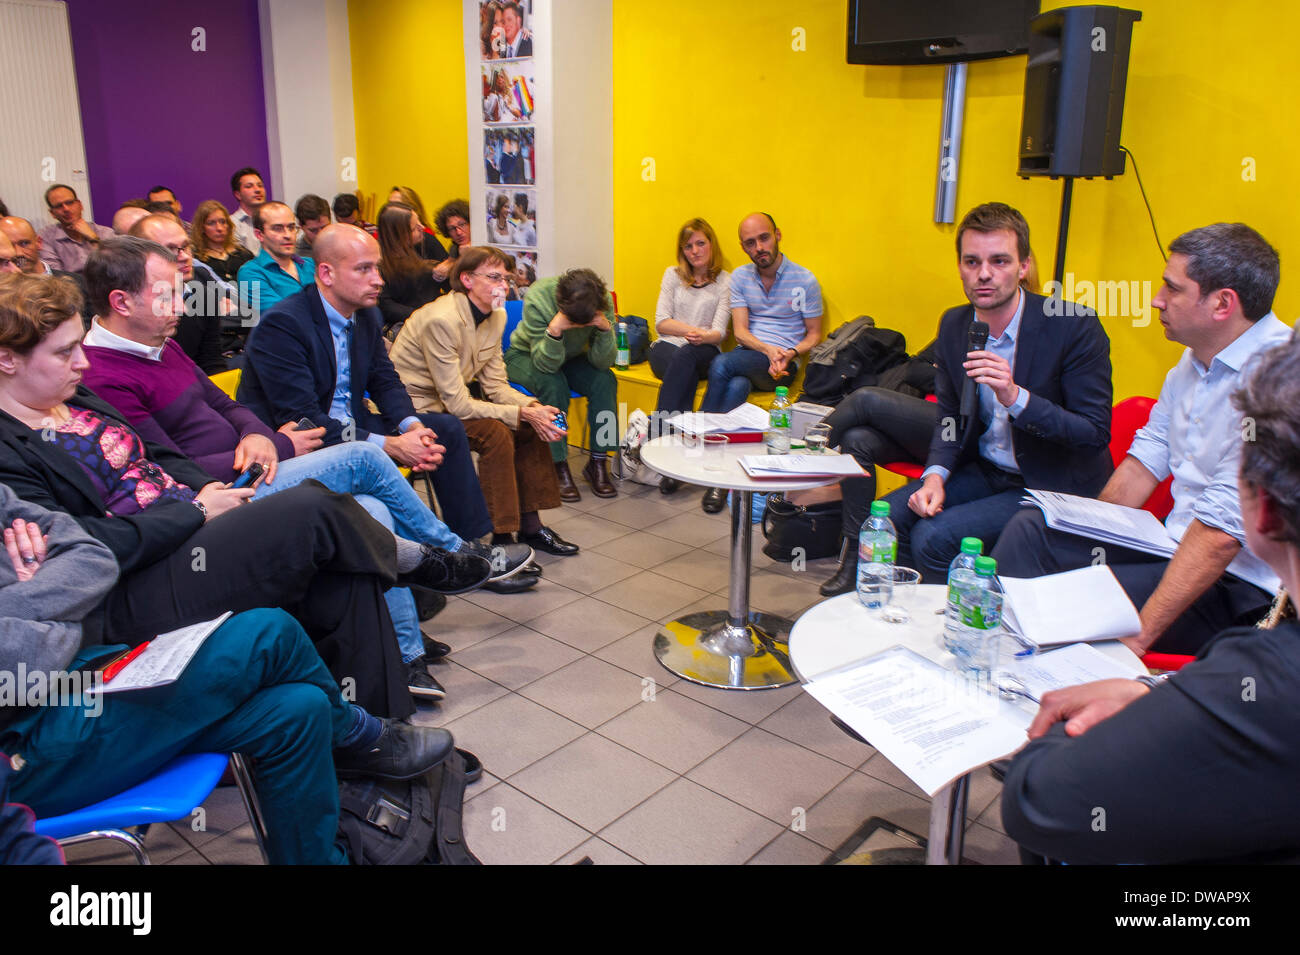 Paris, France. French People, Community Meeting, Centre LGBT Local Political candidates for the Mayor of Paris debate with representatives and members of its member associations, on two main issues:  What are their commitments for the rights of LGBT people and their allies? What steps will they take to fight against violence and discrimination against LGBT people in Paris. - Stock Image